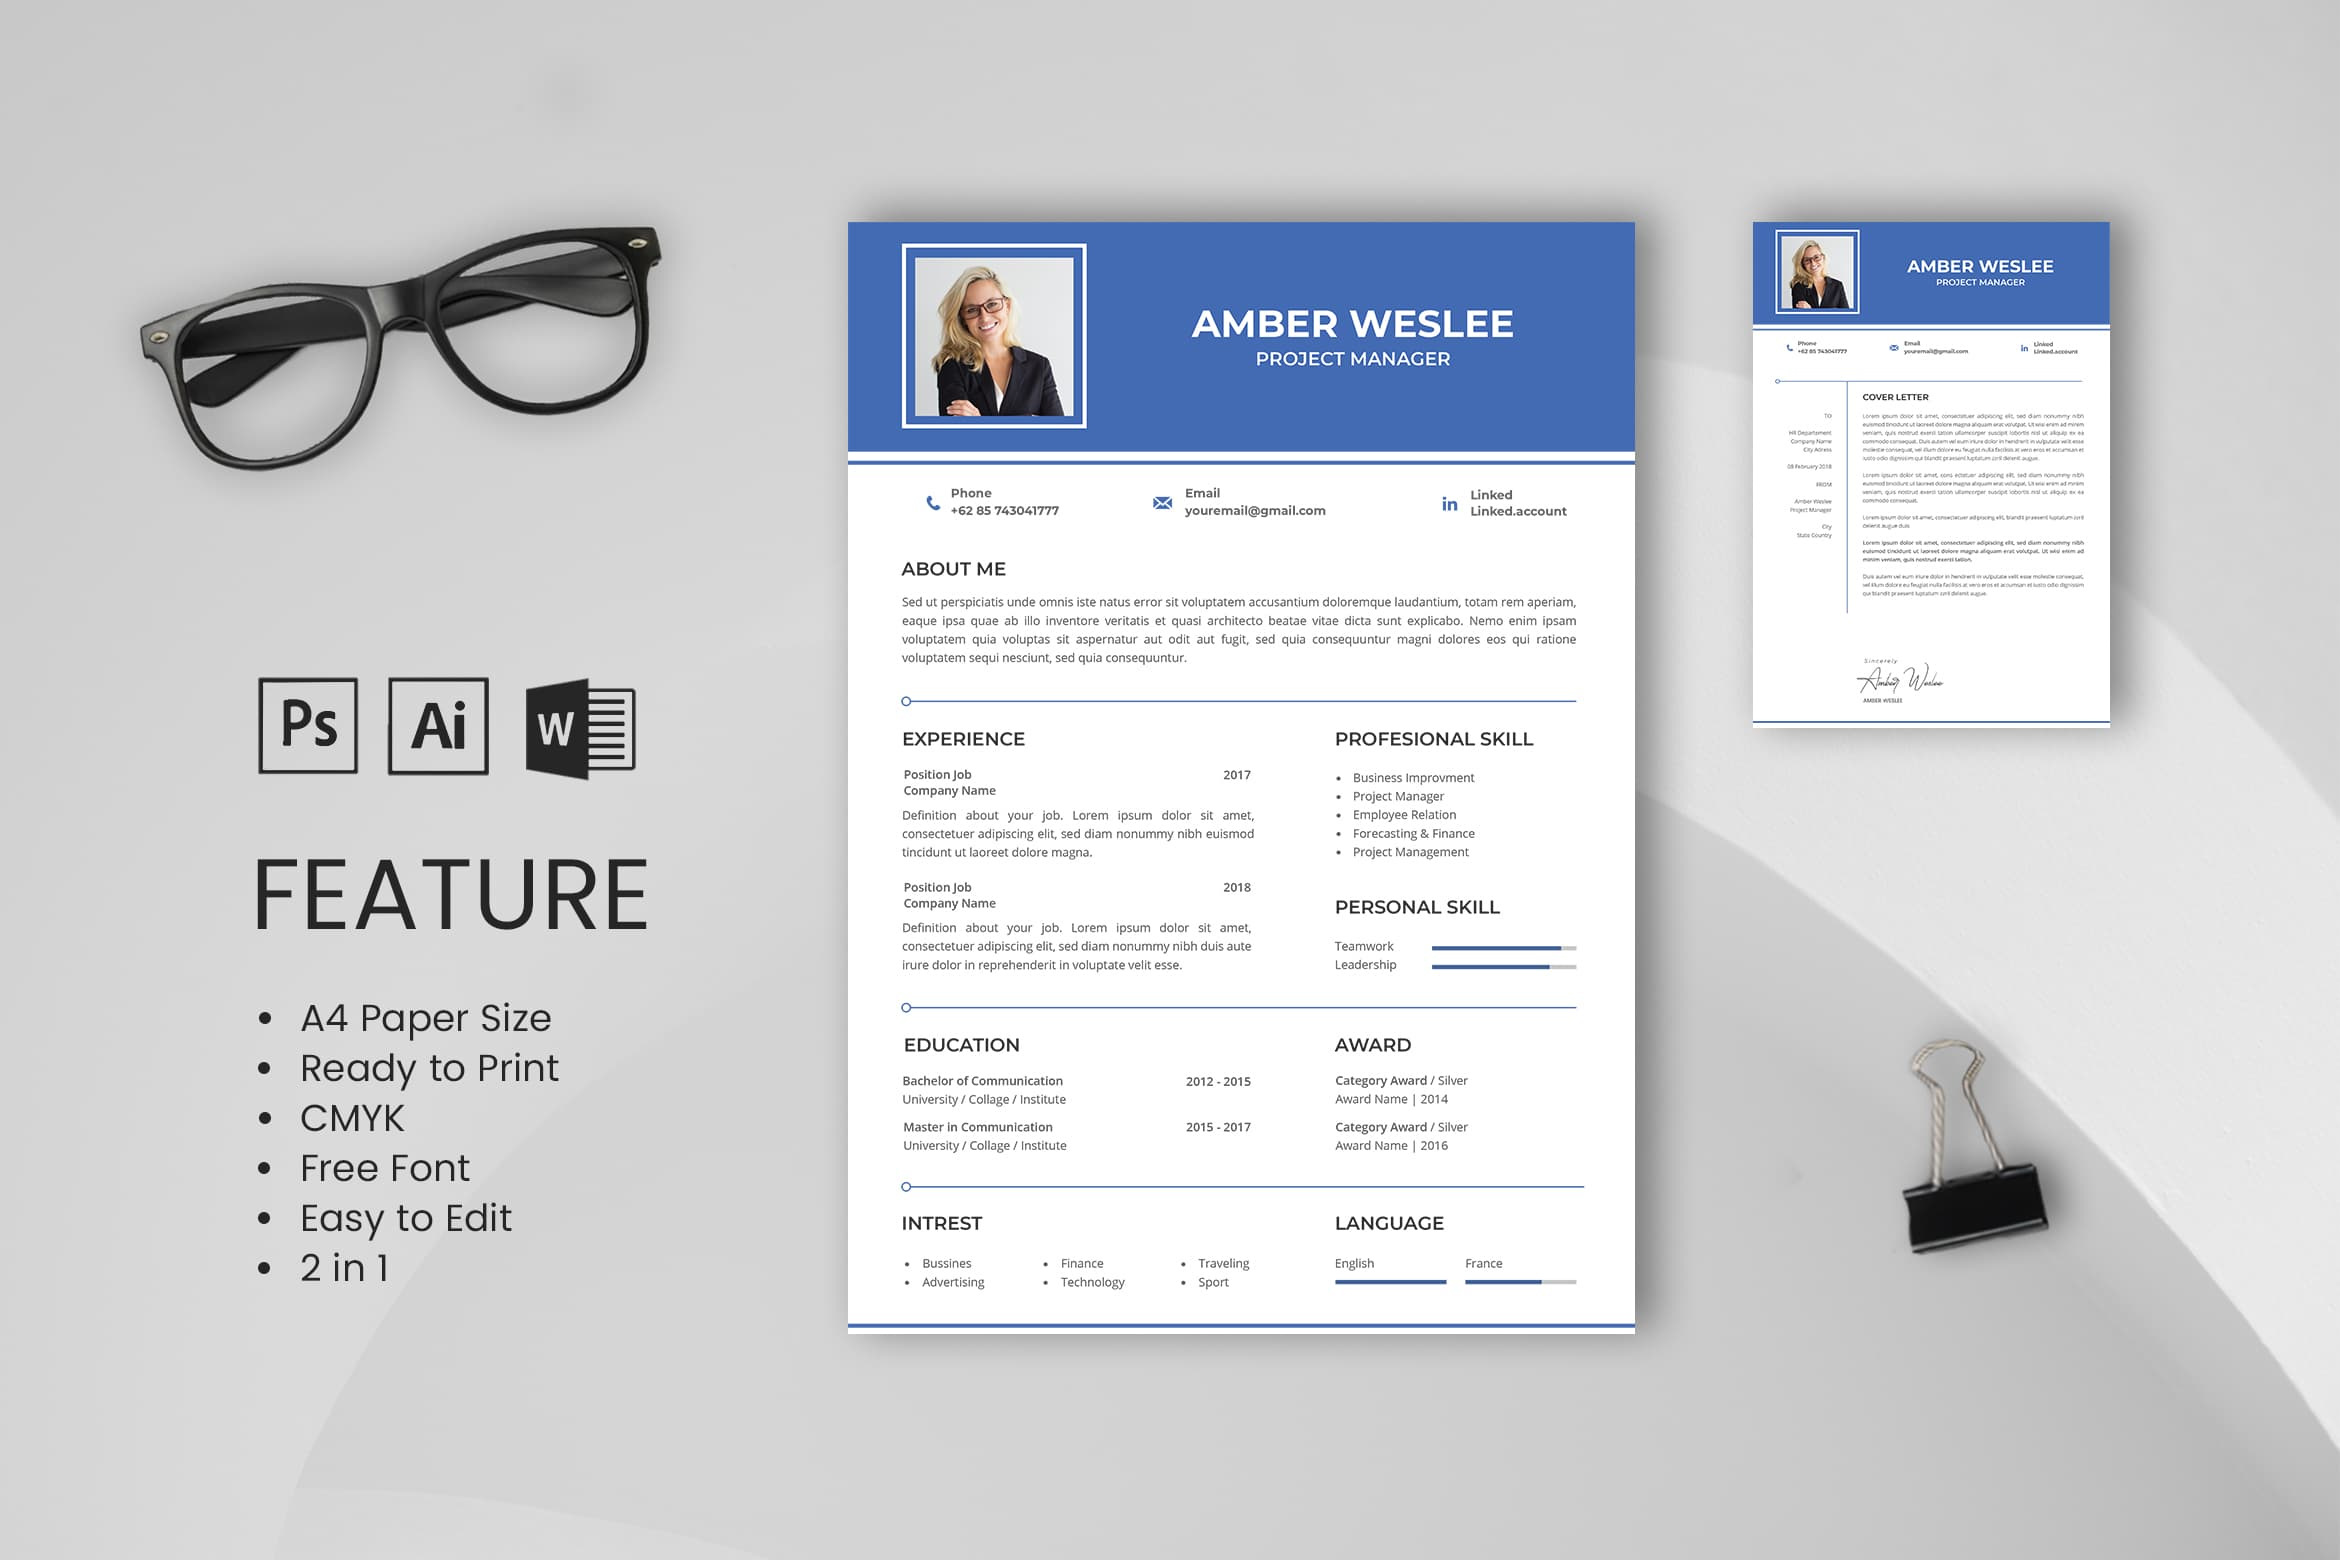 CV Resume - Project Manager Profile